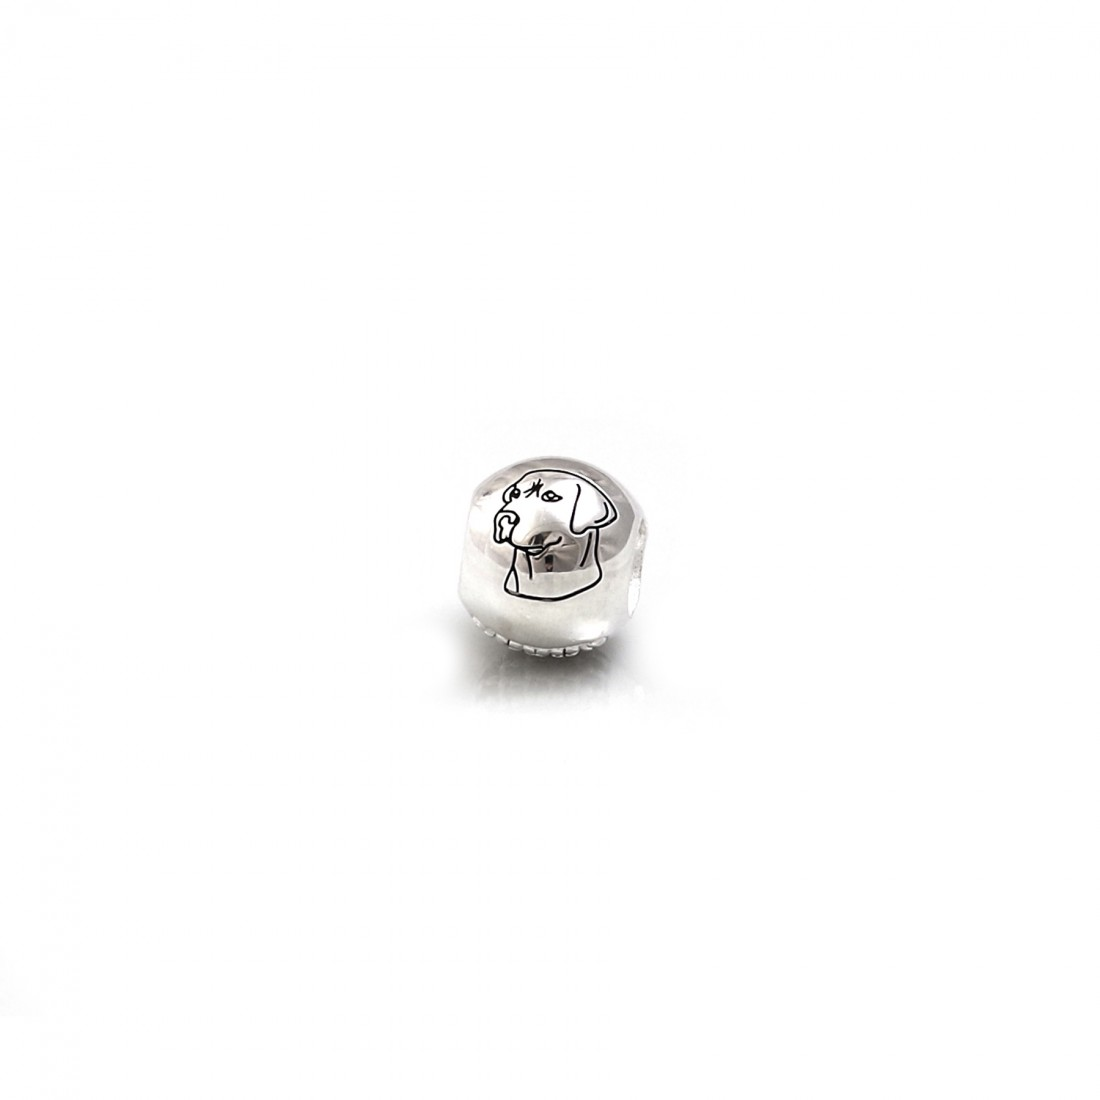 Exclusive Sterling Silver & CZ Labrador Roller Ball Bead